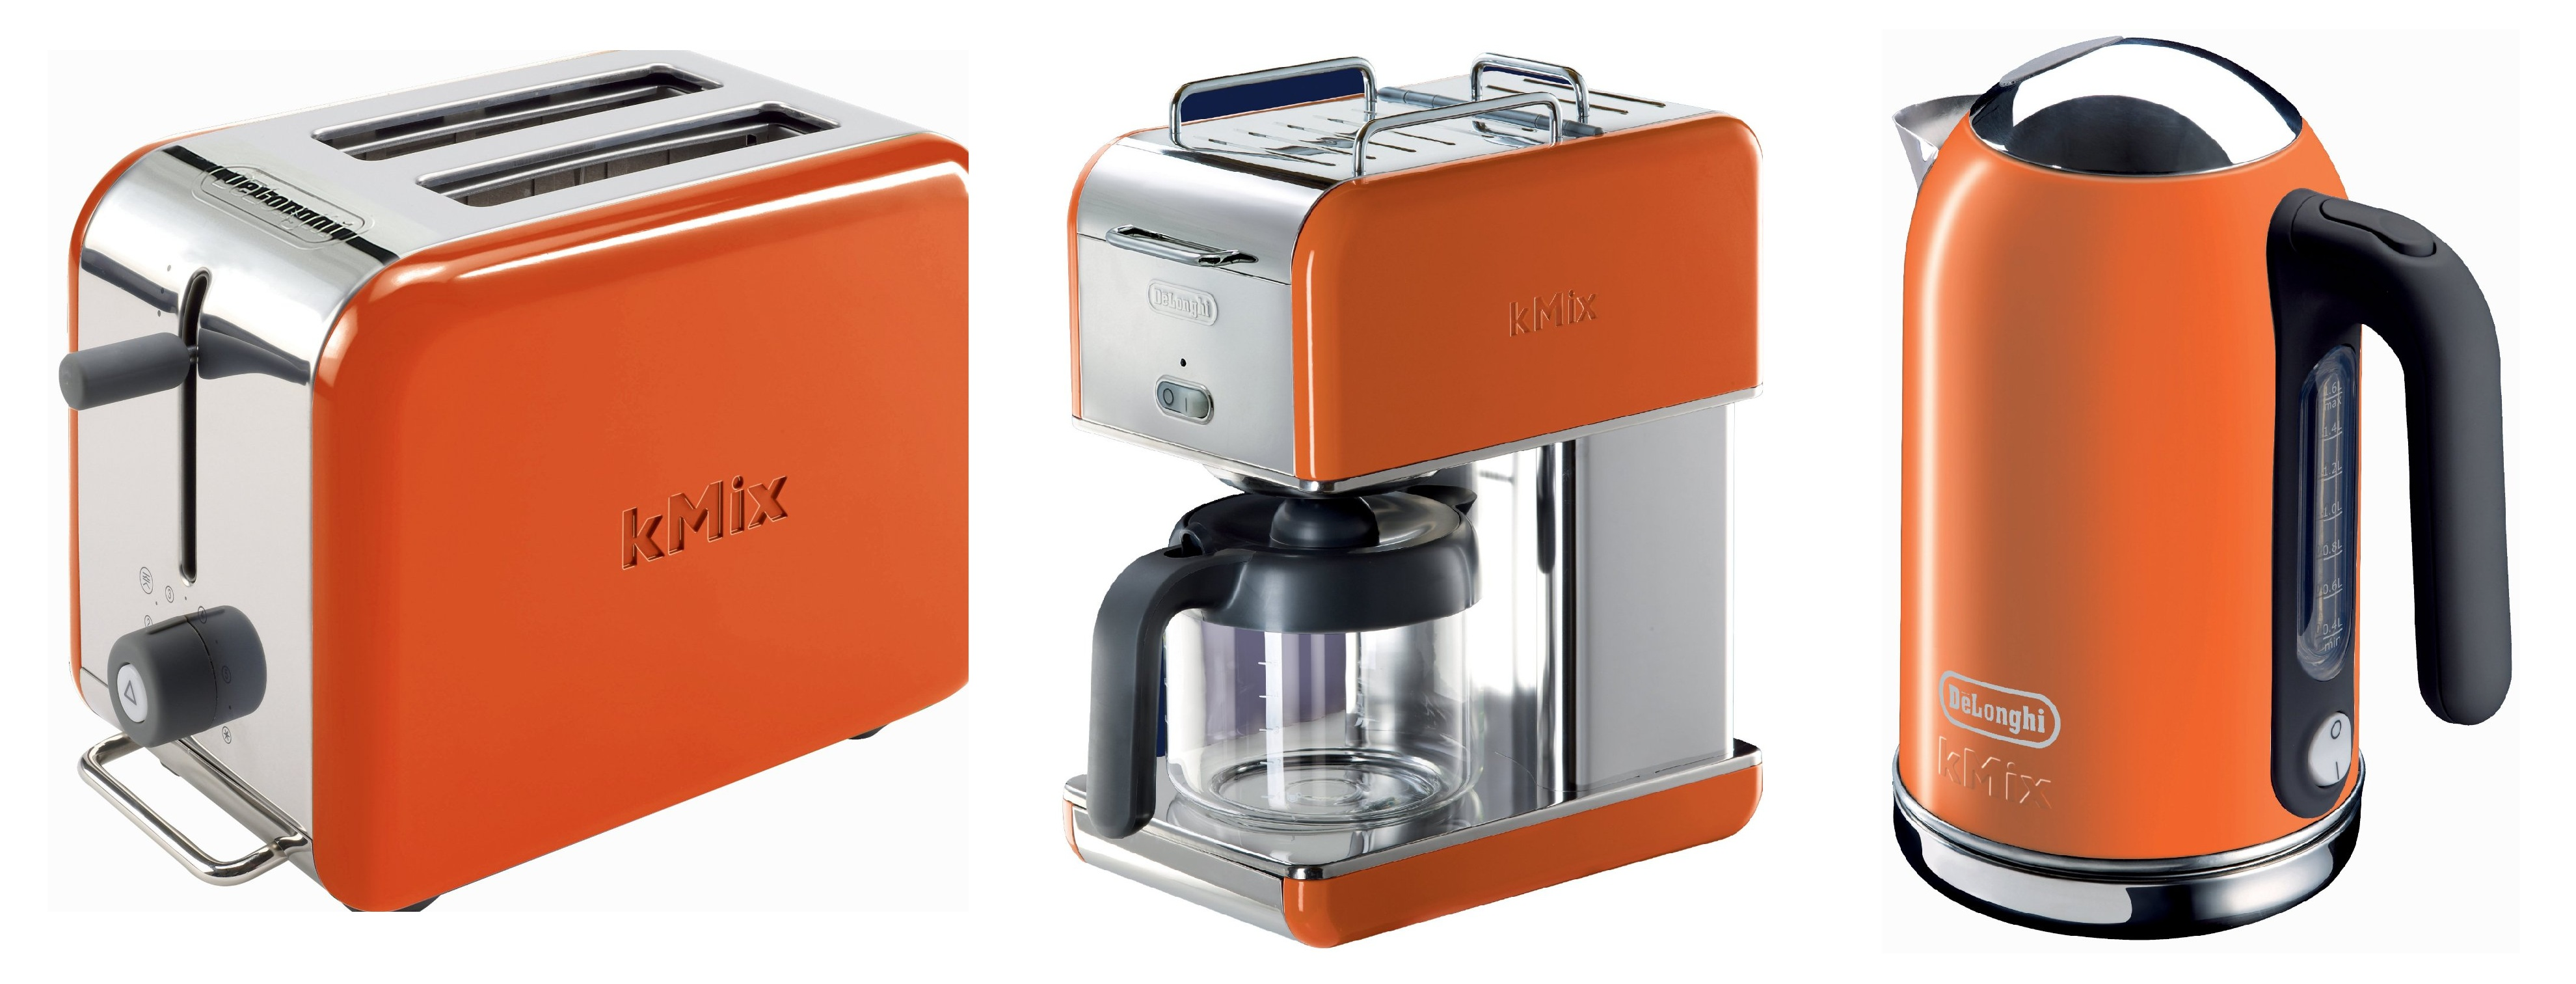 Uncategorized Kitchen Appliance Design small kitchen appliances remarkable orange in color 3960 x 1512 696 kb jpeg